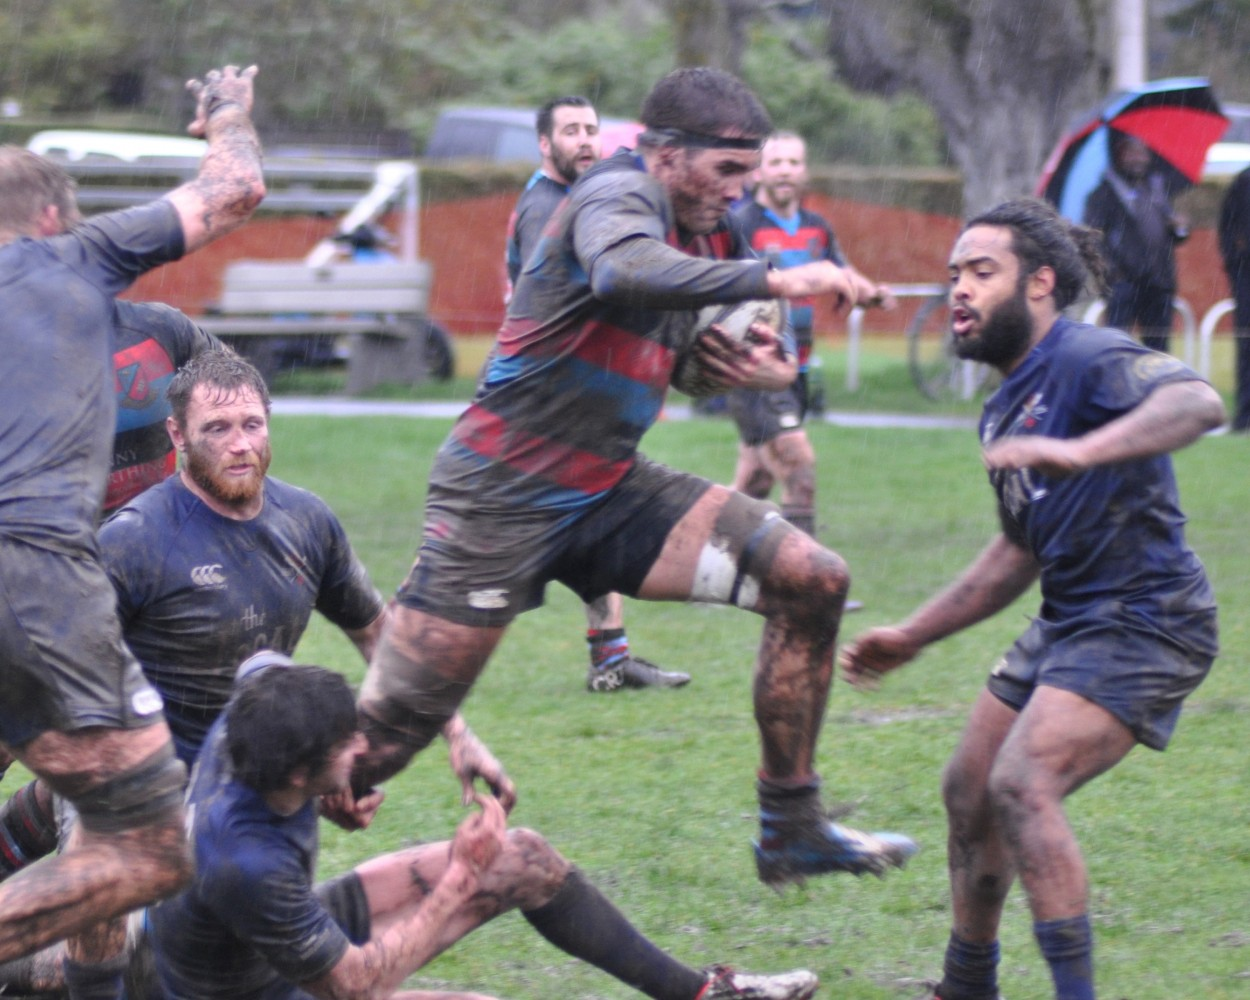 Game Report - A Glum Day at Windsor